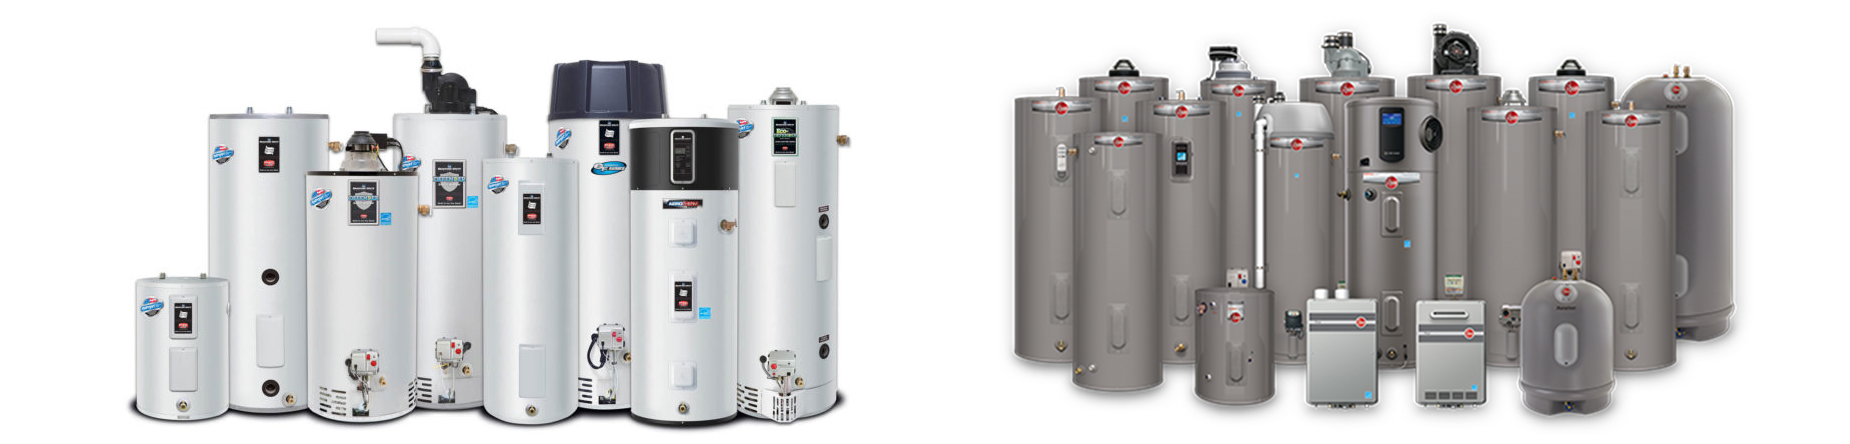 Palm Coast Water Heater Sales and Installation by Total Comfort